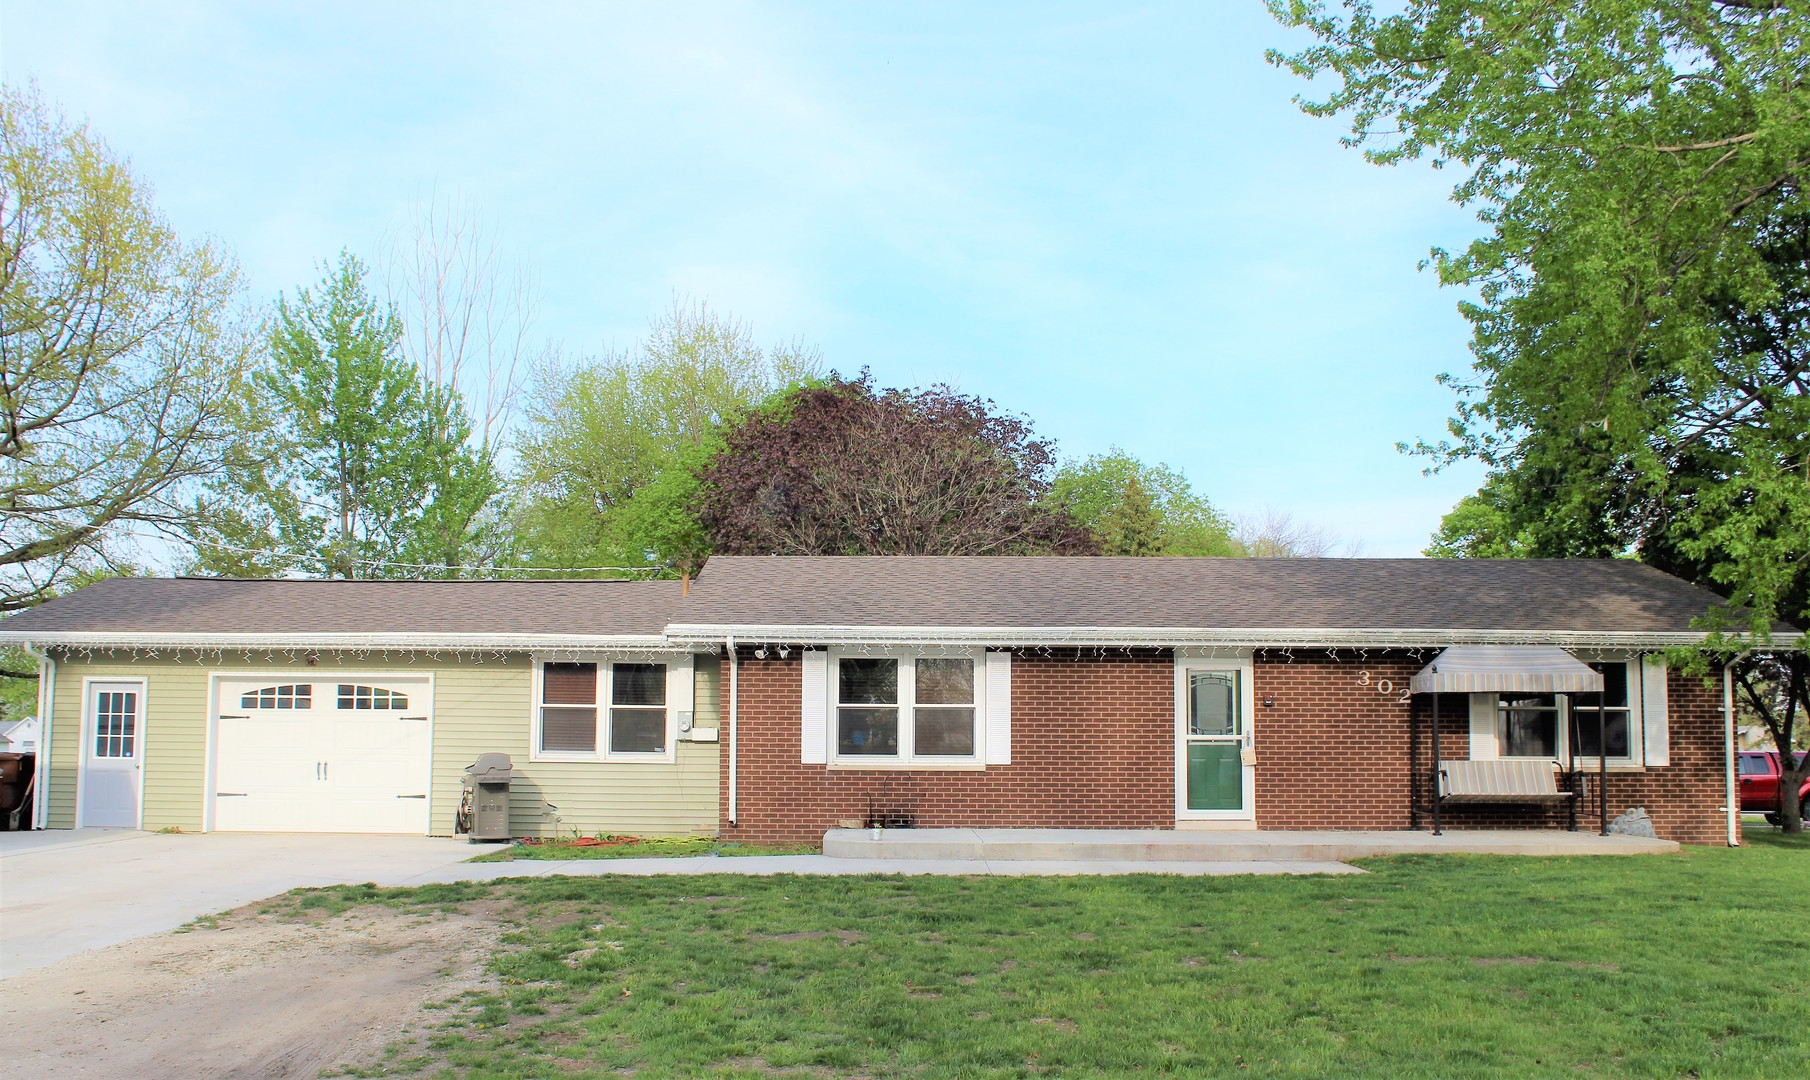 Property for sale at 302 North Railroad Street, Gardner,  IL 60424